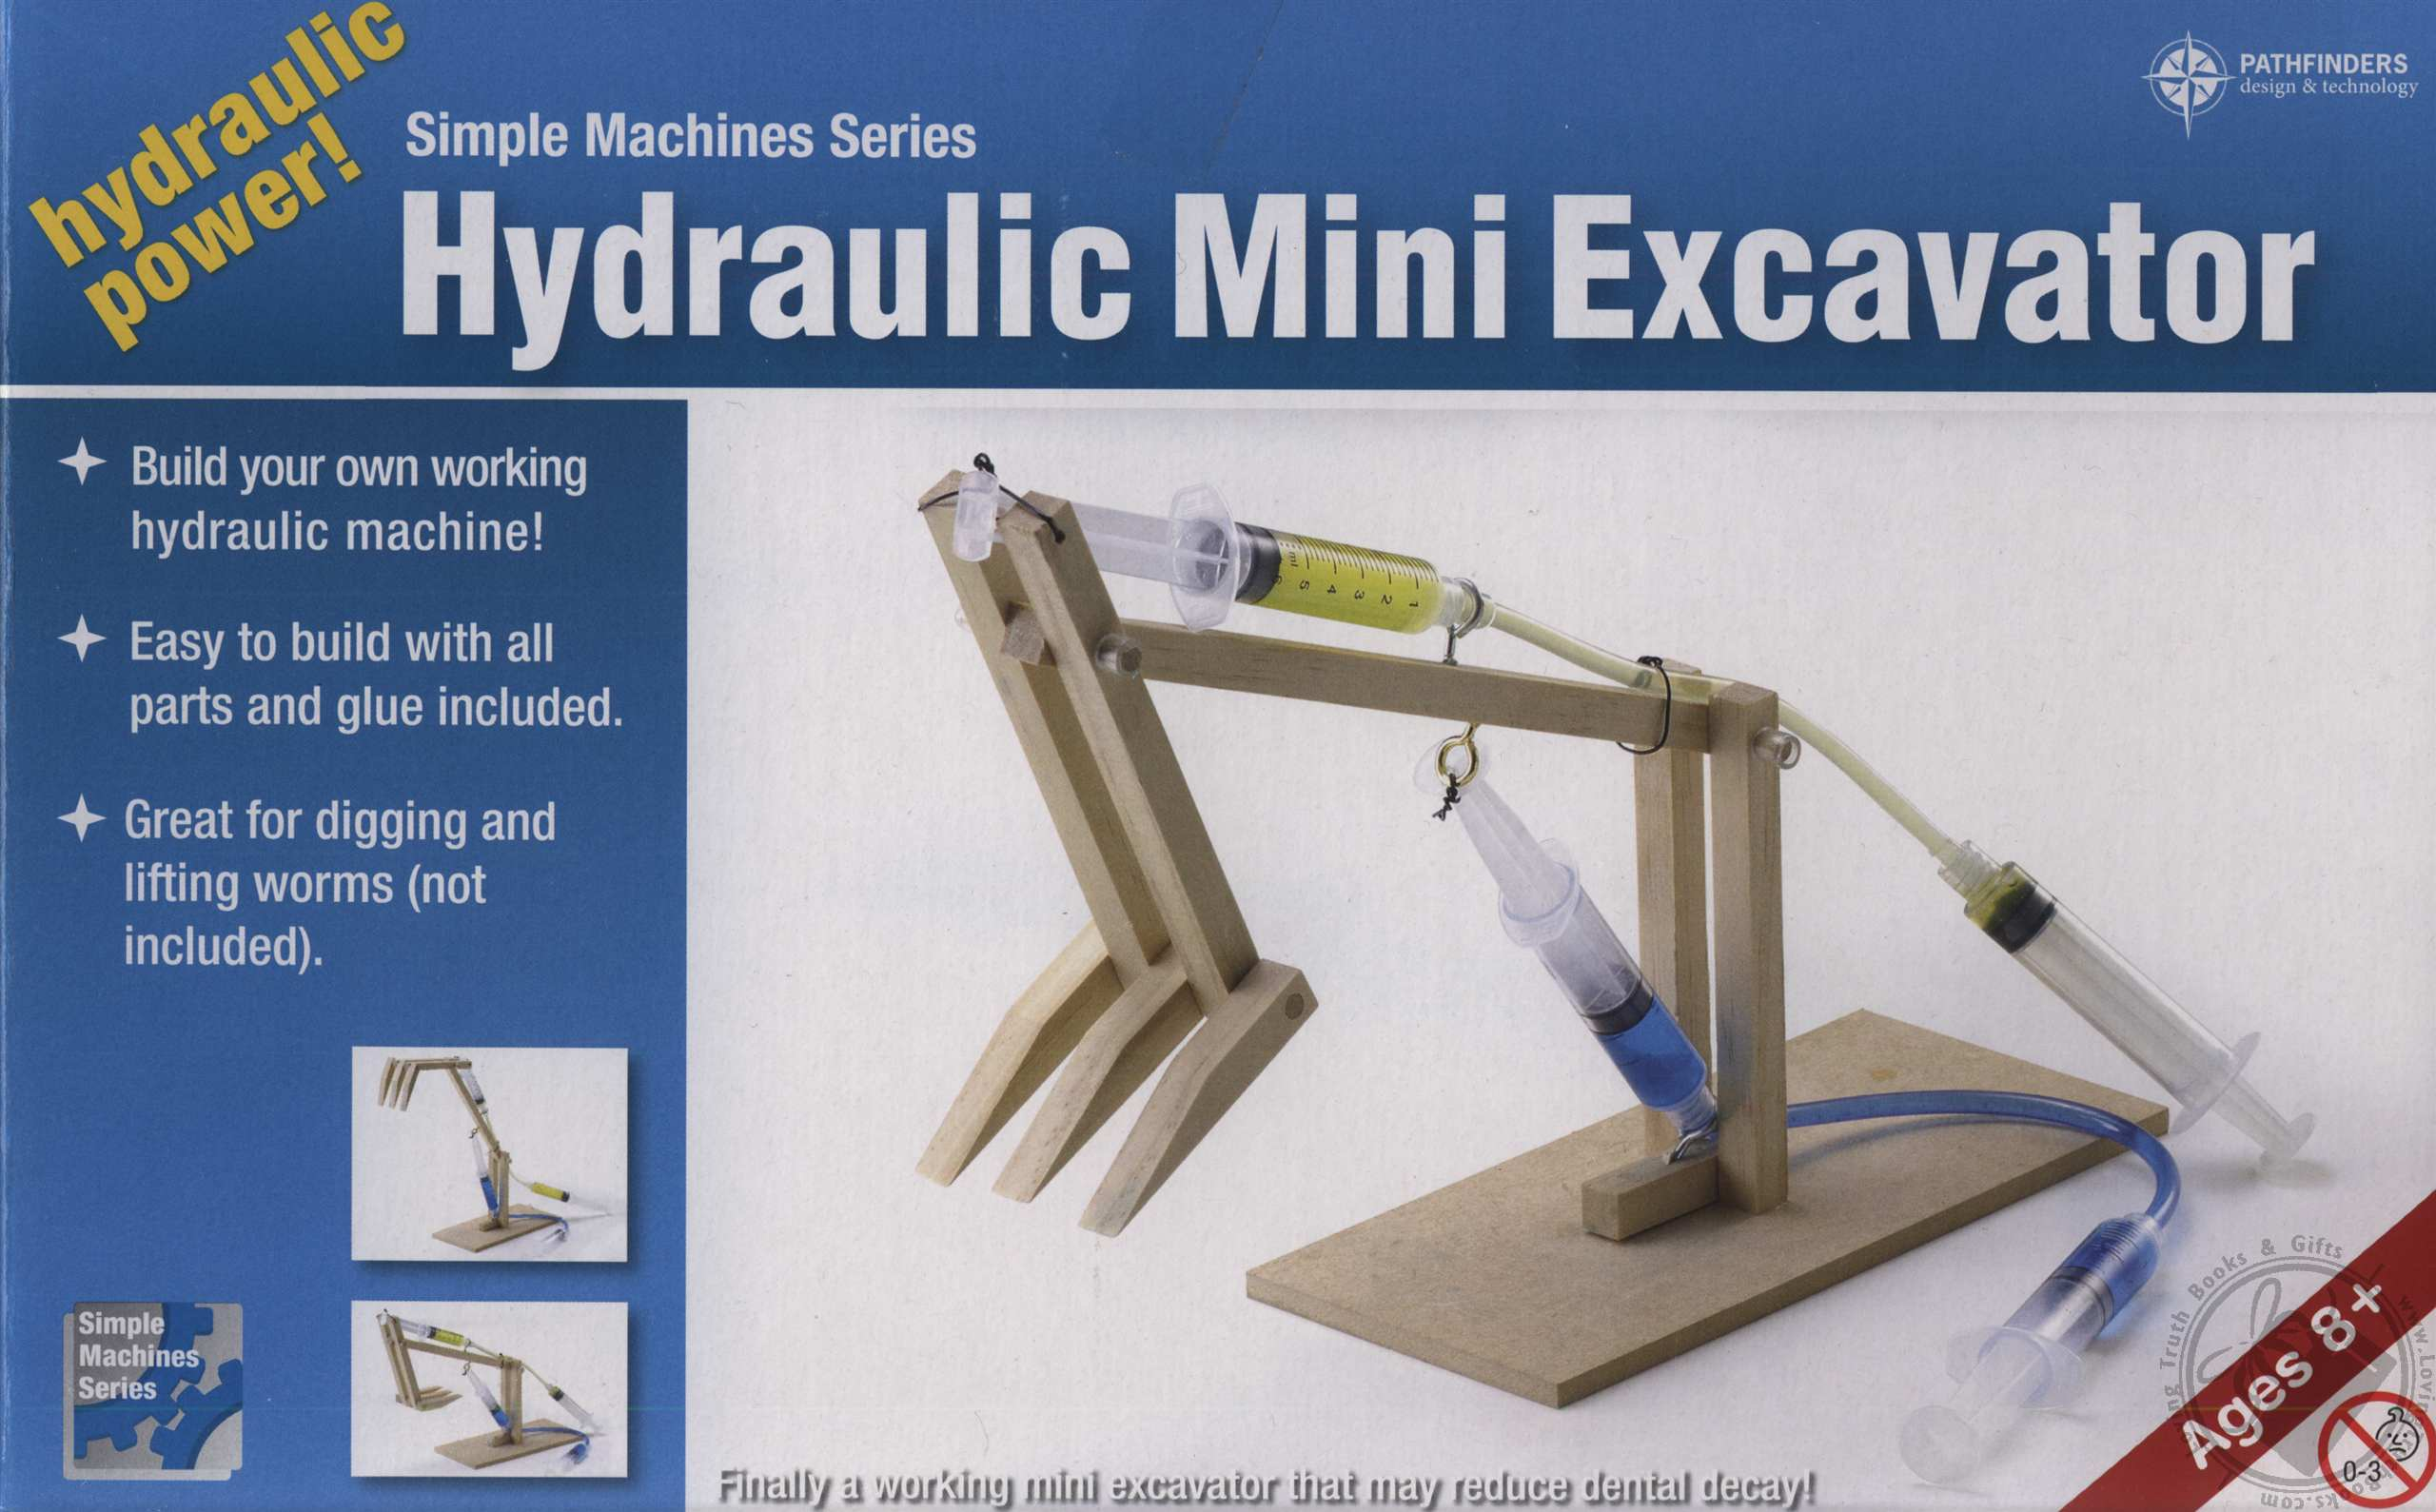 simple machines series wooden hydraulic mini excavator for ages